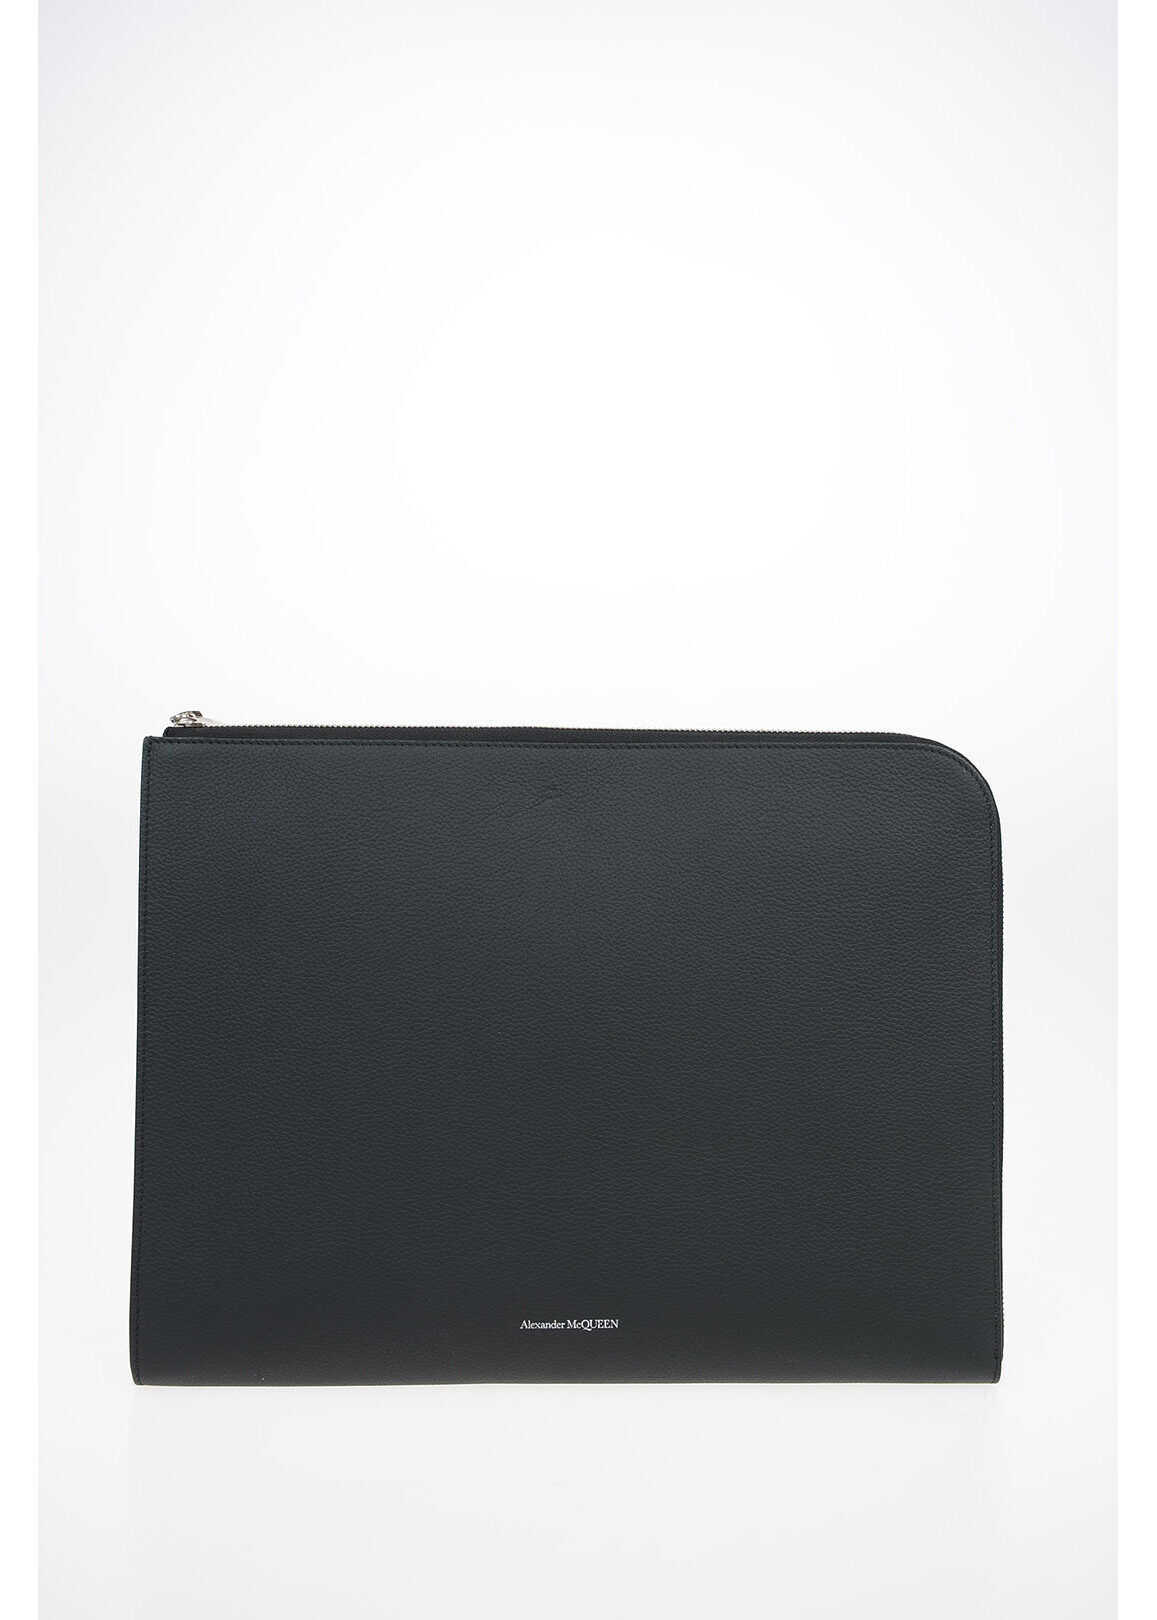 Alexander McQueen Textured Leather Briefcase with Zip Closure BLACK imagine b-mall.ro